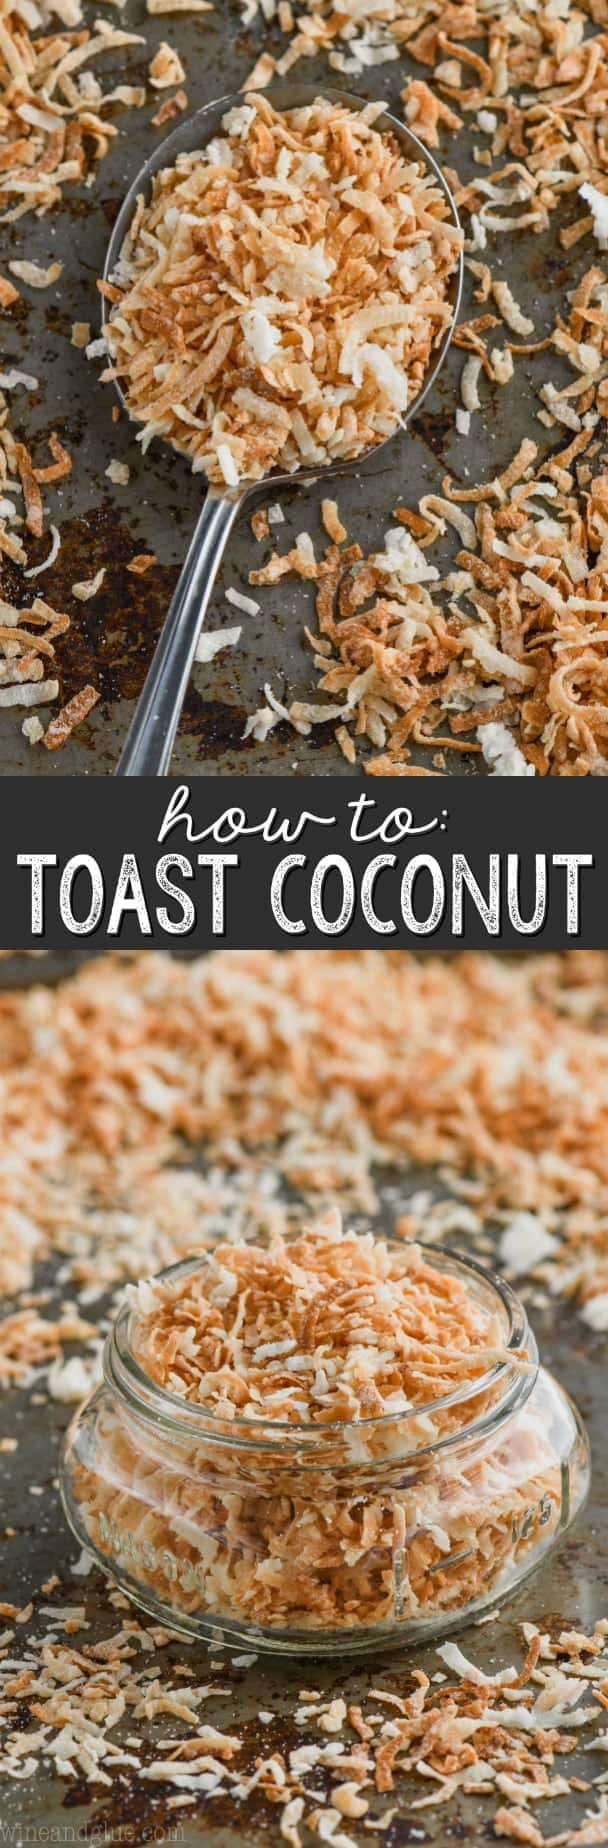 Spoonful of toasted coconut flakes on a baking sheet.